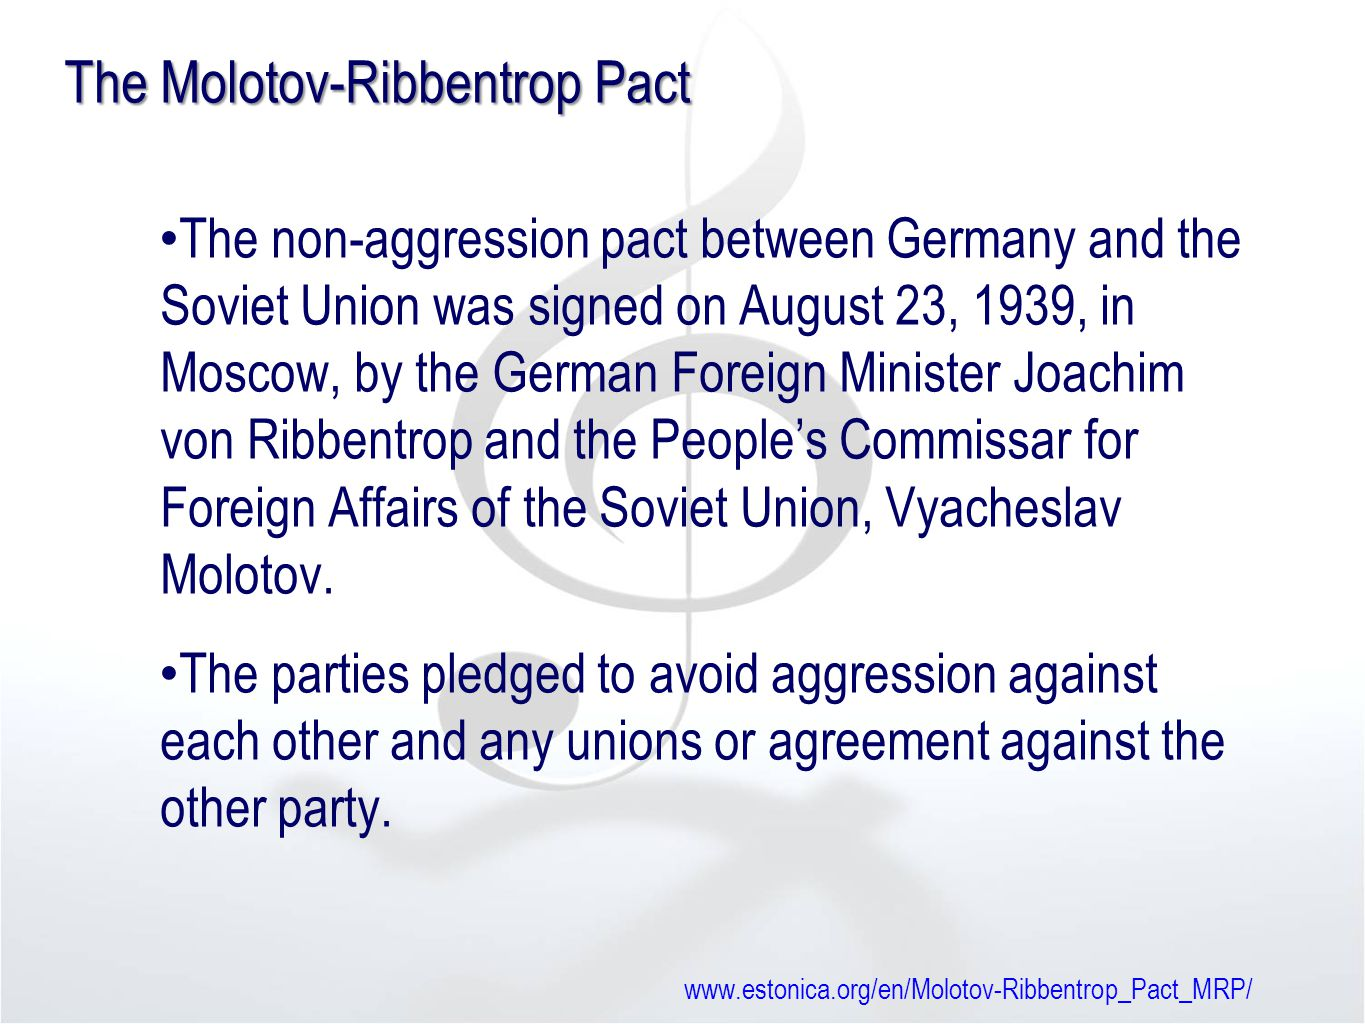 Molotov signing the German-Soviet non-aggression pact, Moscow, Russia, August 23, 1939.